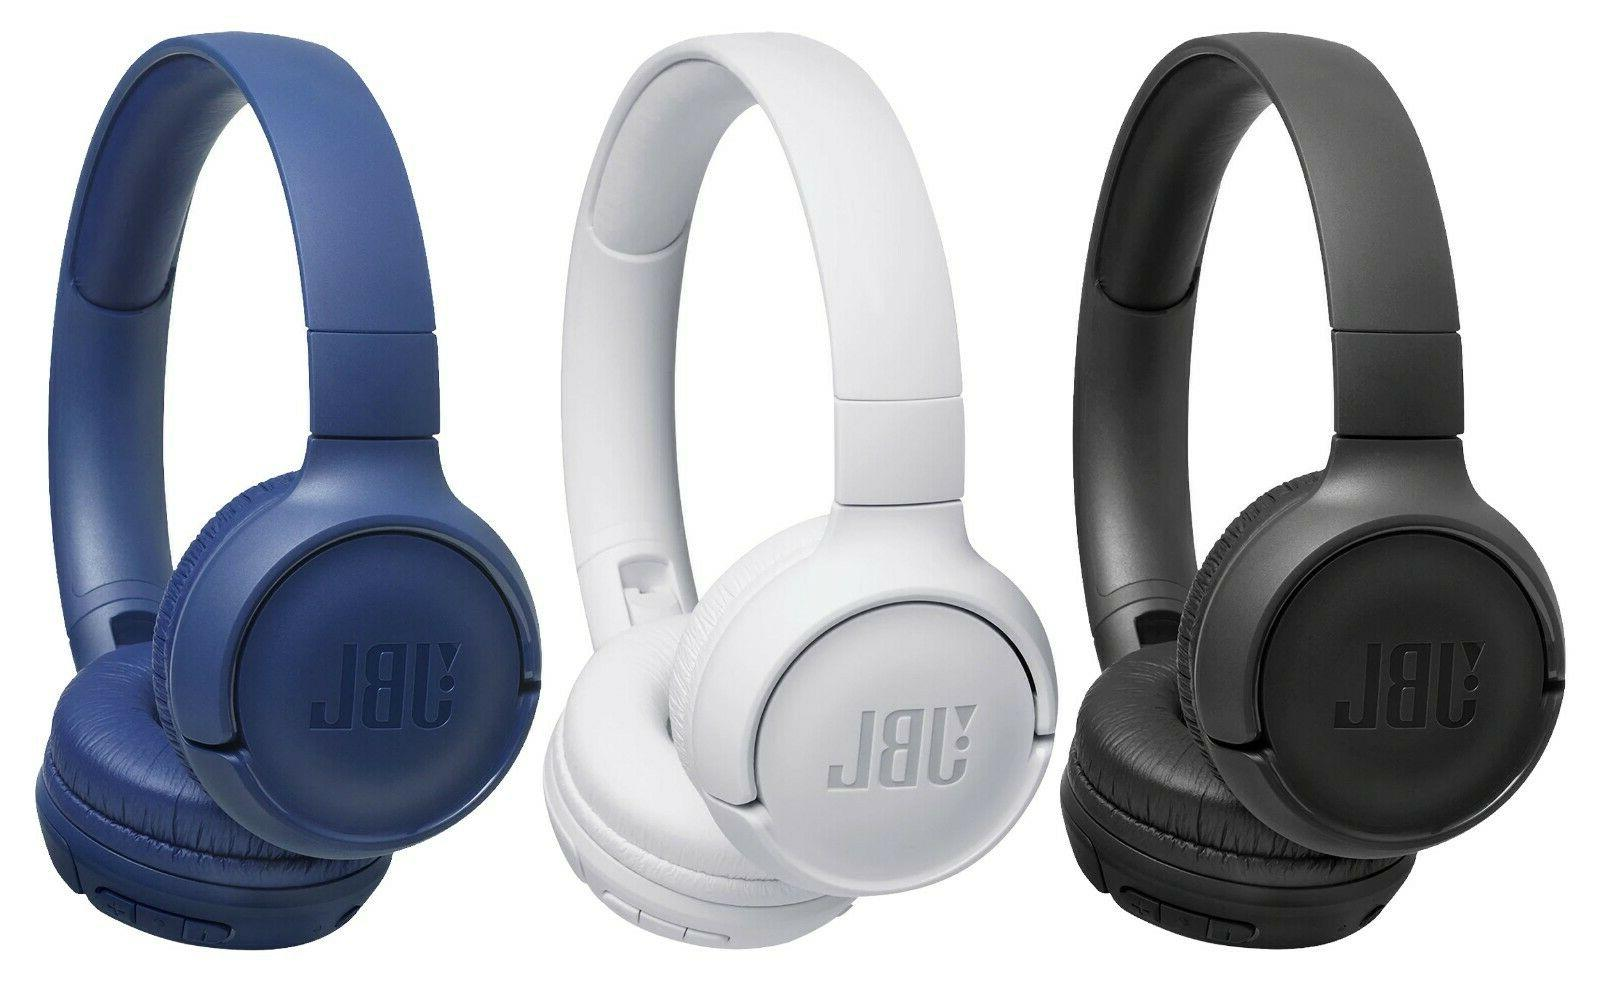 JBL LIVE Bluetooth On-Ear Built-in Microphone